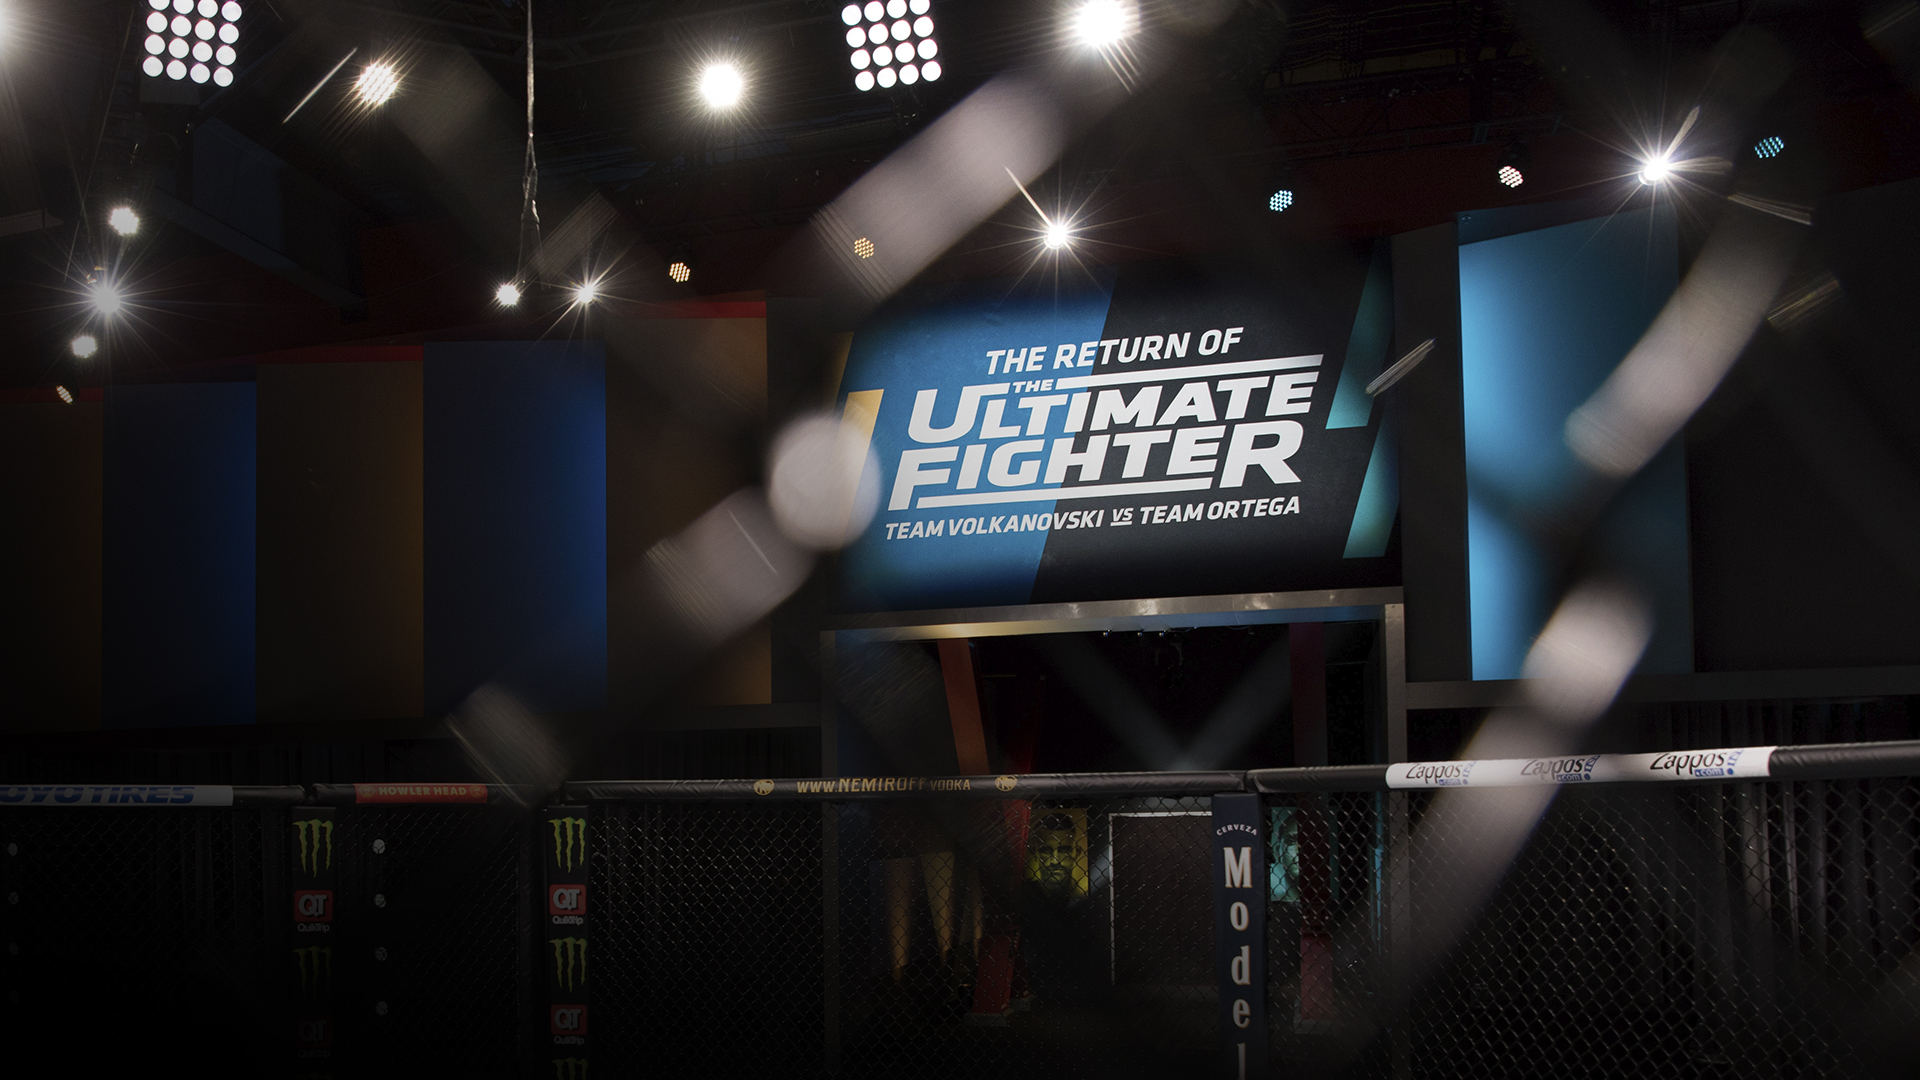 General image of the Octagon in the UFC Apex during the filming of The Return Of The Ultimate Fighter (photo by Chris Unger/Zuffa LLC)